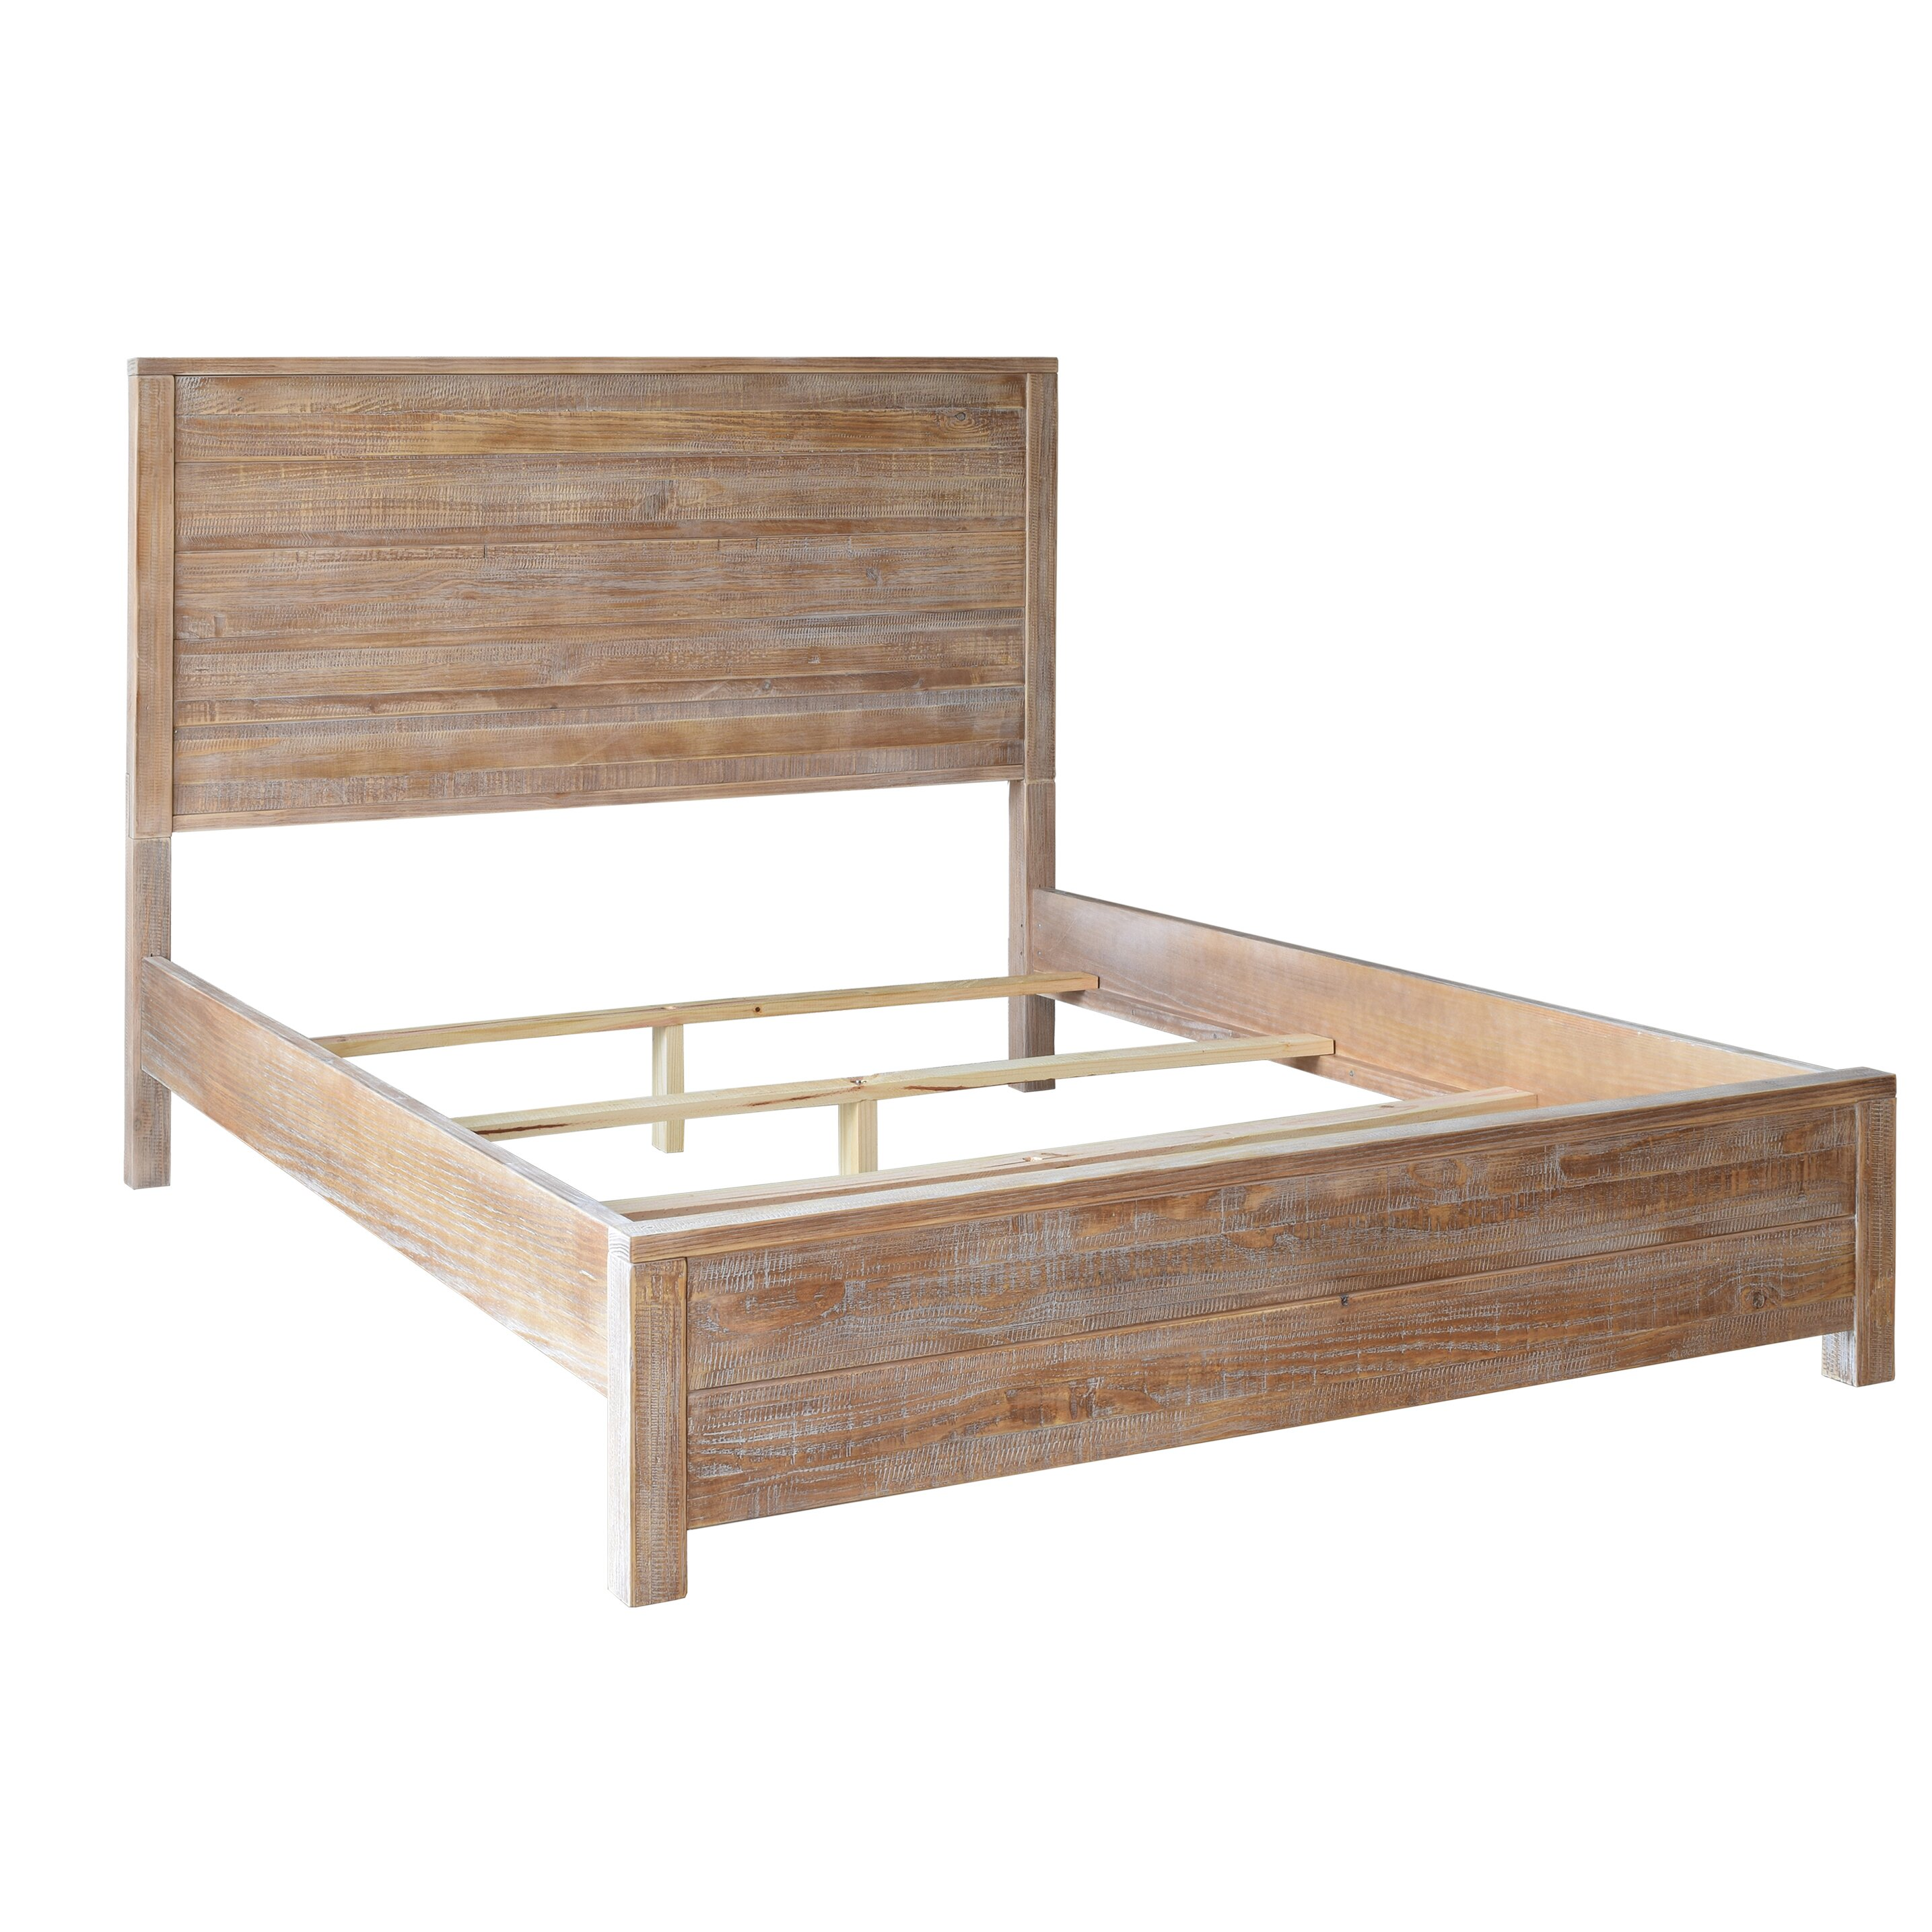 Wonderful image of Grain Wood Furniture Montauk Panel Bed & Reviews Wayfair with #8B6040 color and 2870x2870 pixels